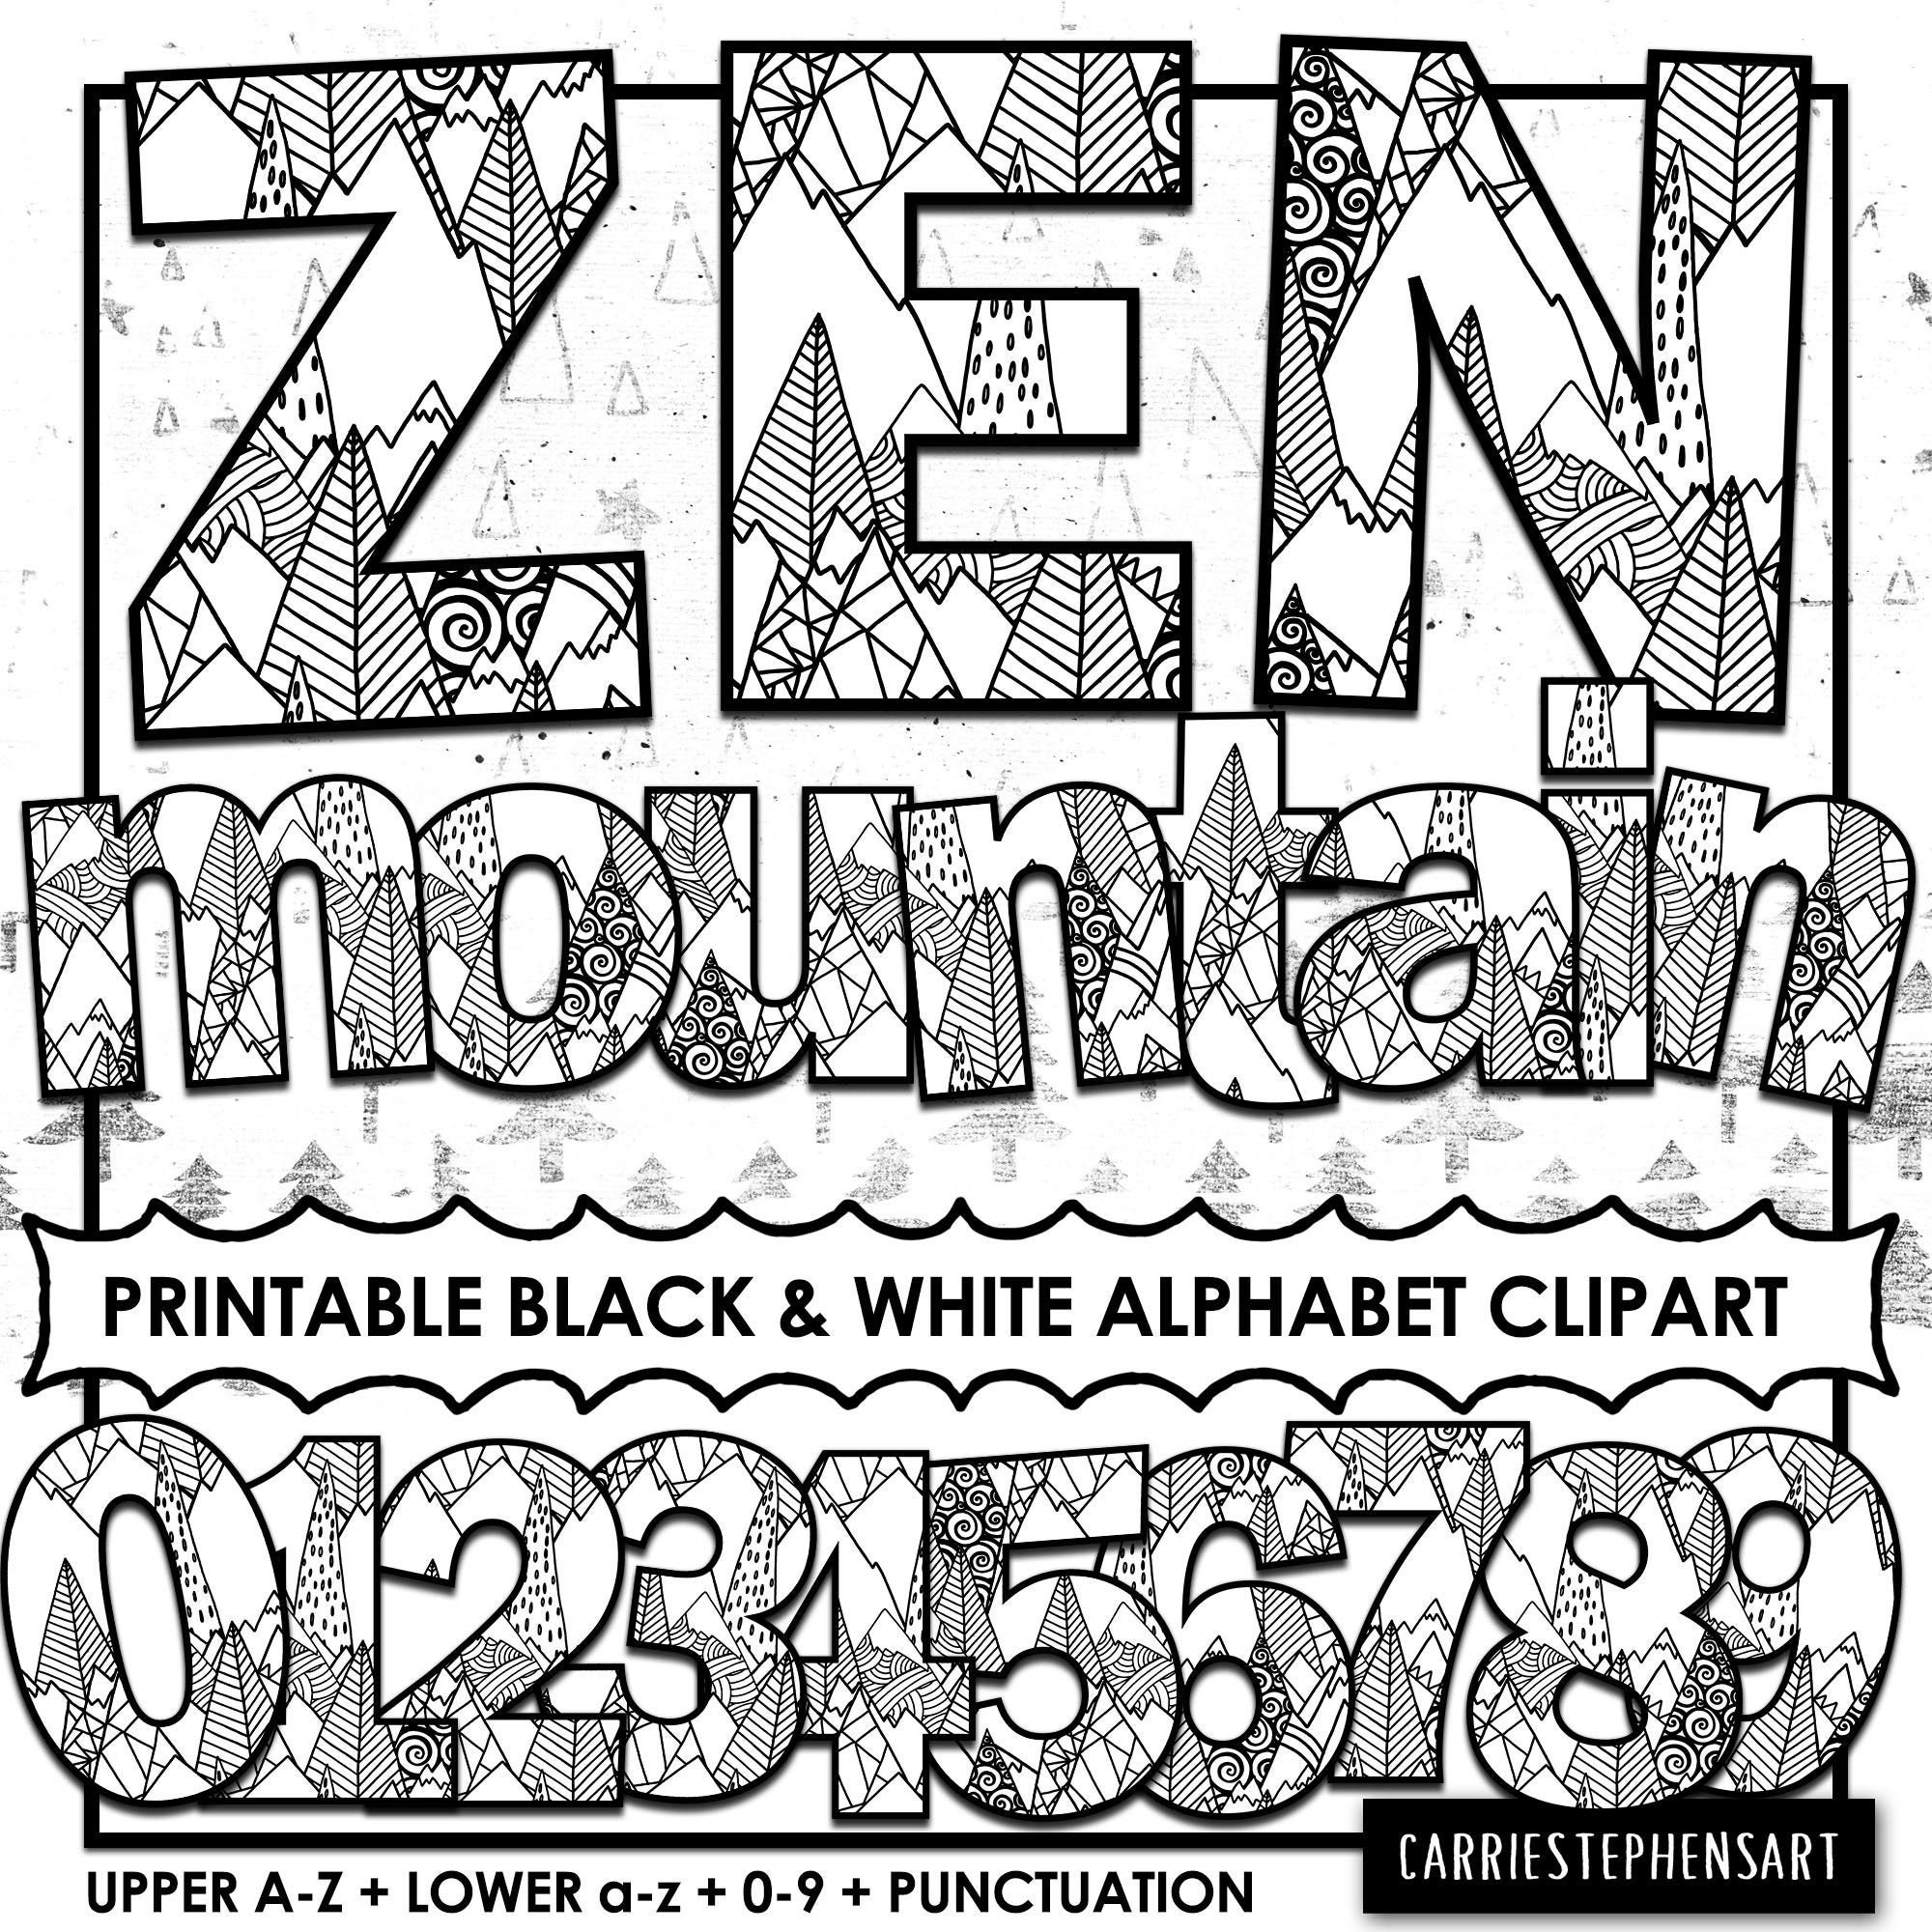 image about Bulletin Board Letters Printable called Zen Mountain Alphabet ClipArt, PRINTABLE Bulletin Board